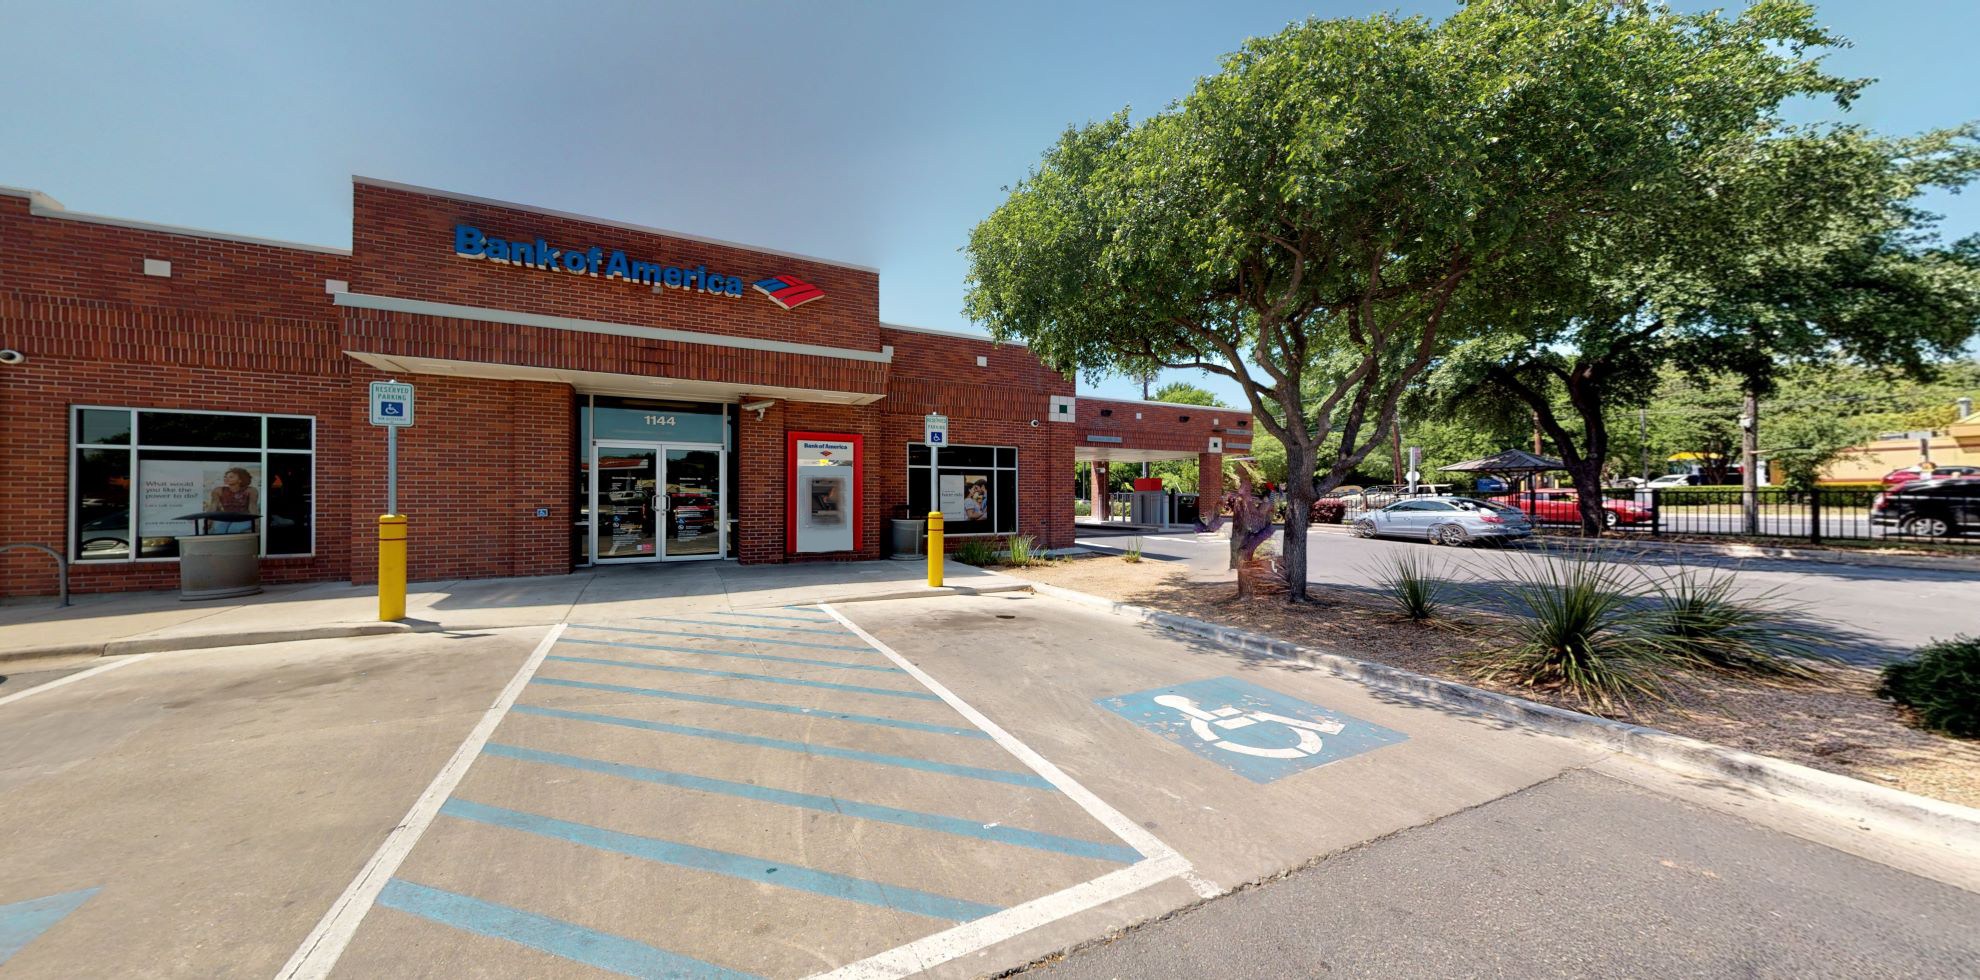 Bank of America financial center with drive-thru ATM and teller   1144 Airport Blvd STE 700, Austin, TX 78702